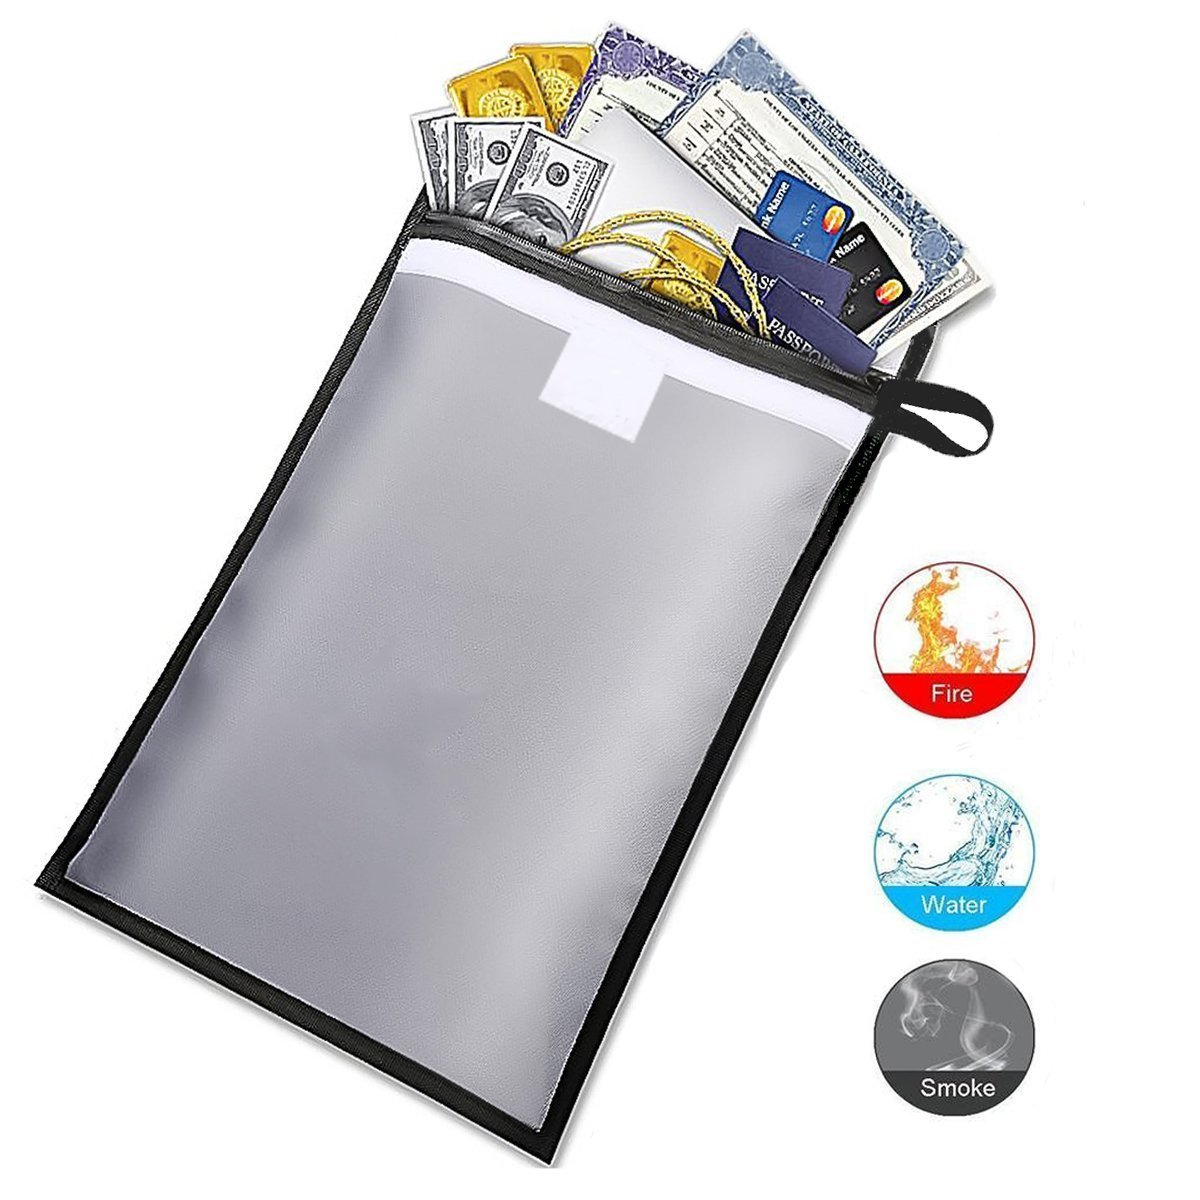 Ewolee Fireproof Document Bag, Fire Water Resistant Large Money Bag Envelope Holder with Zipper and Velcro Closure, Waterproof Fireproof Safe Pouch Holder Storage for Money, Documents, Jewelry and Passport ( 15 x 11 Gray)